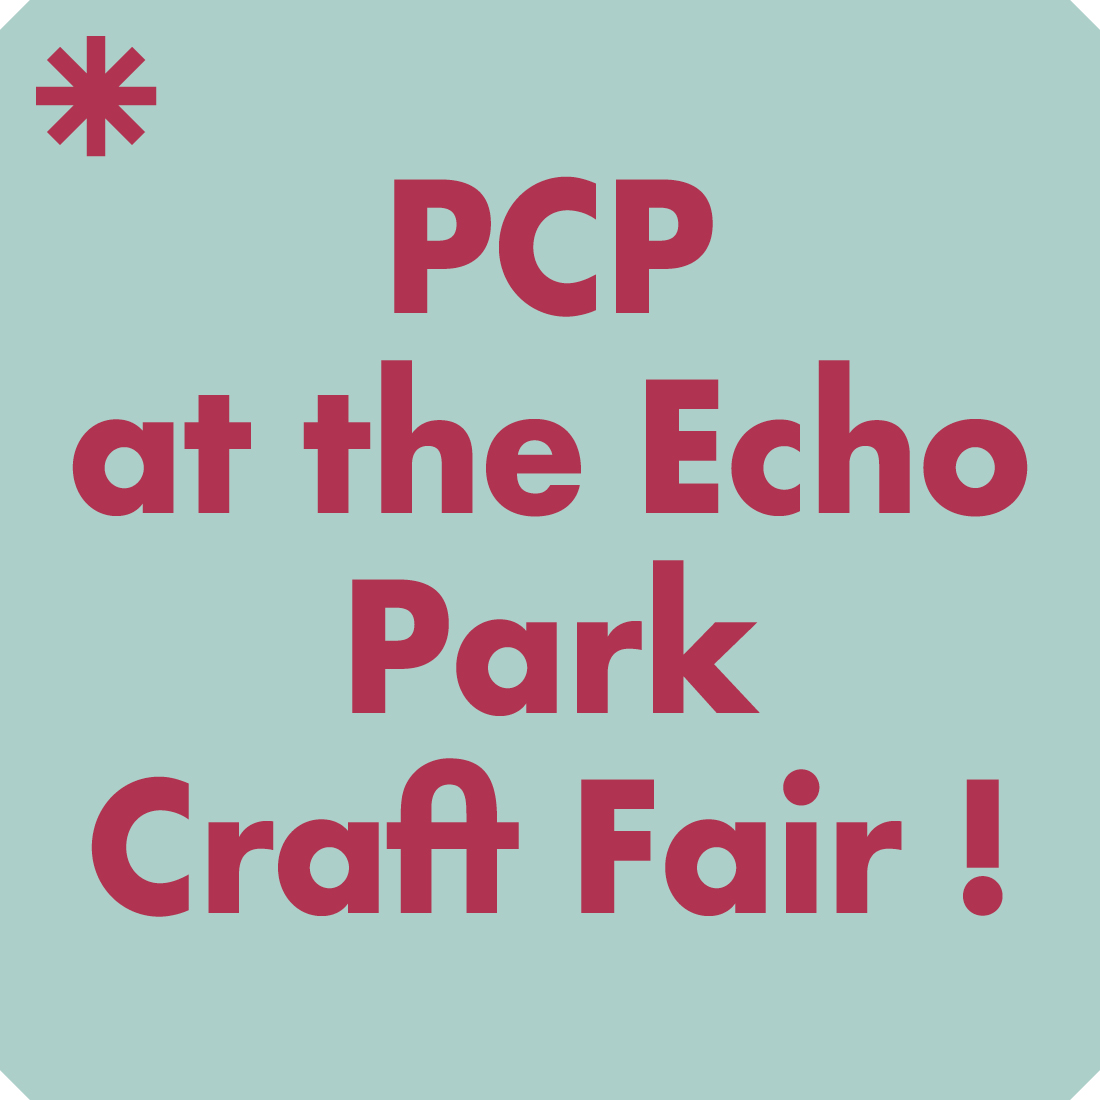 Paper Chase Press at the Echo Park Craft Fair.